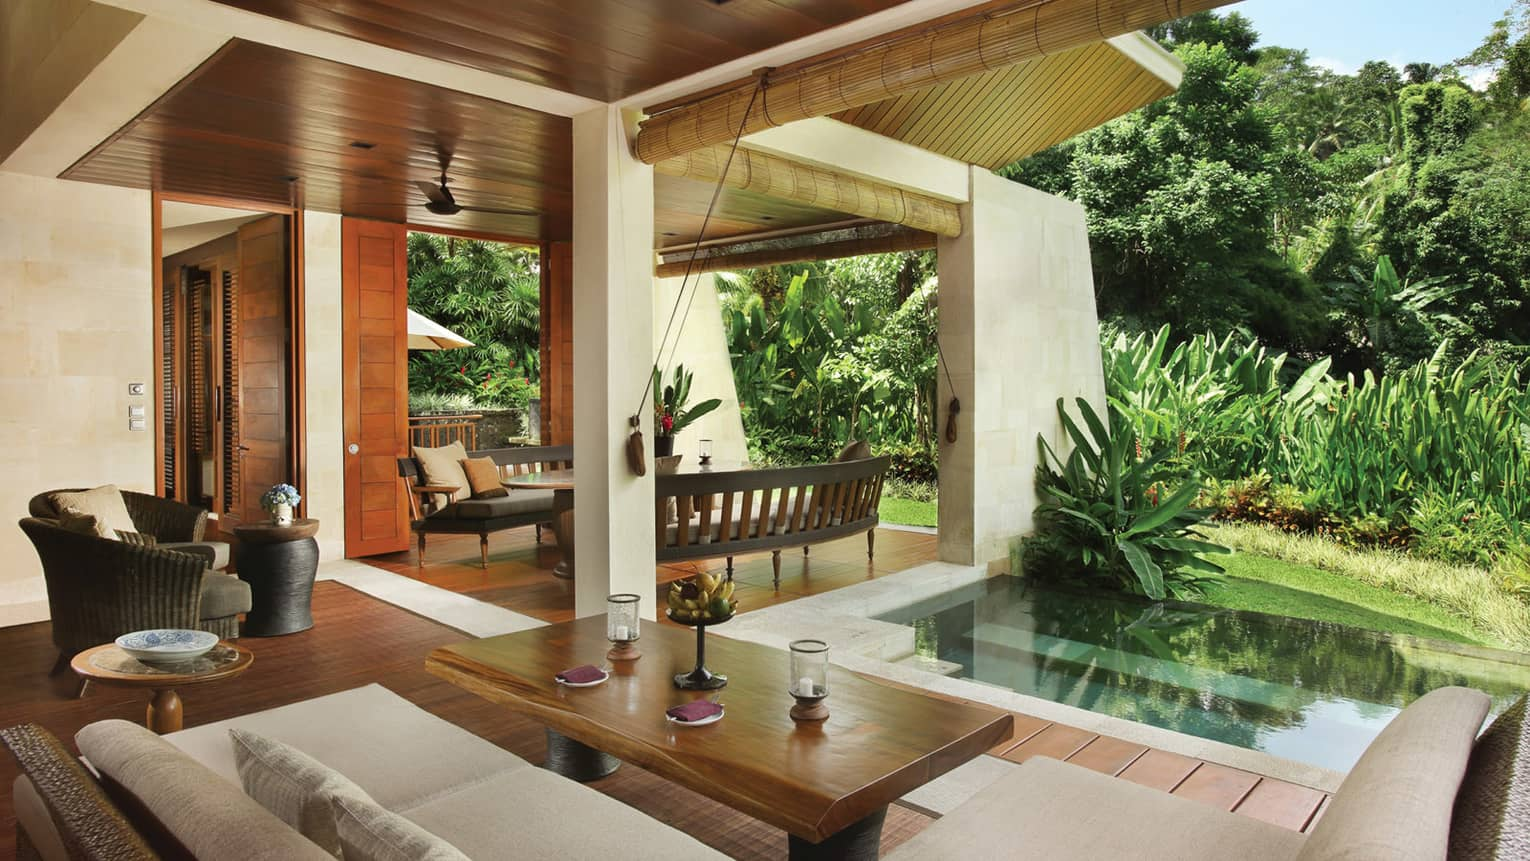 Two Bedroom Villa open-air living space with wood floors, white patio sofa, plunge pool beside green tropical plants